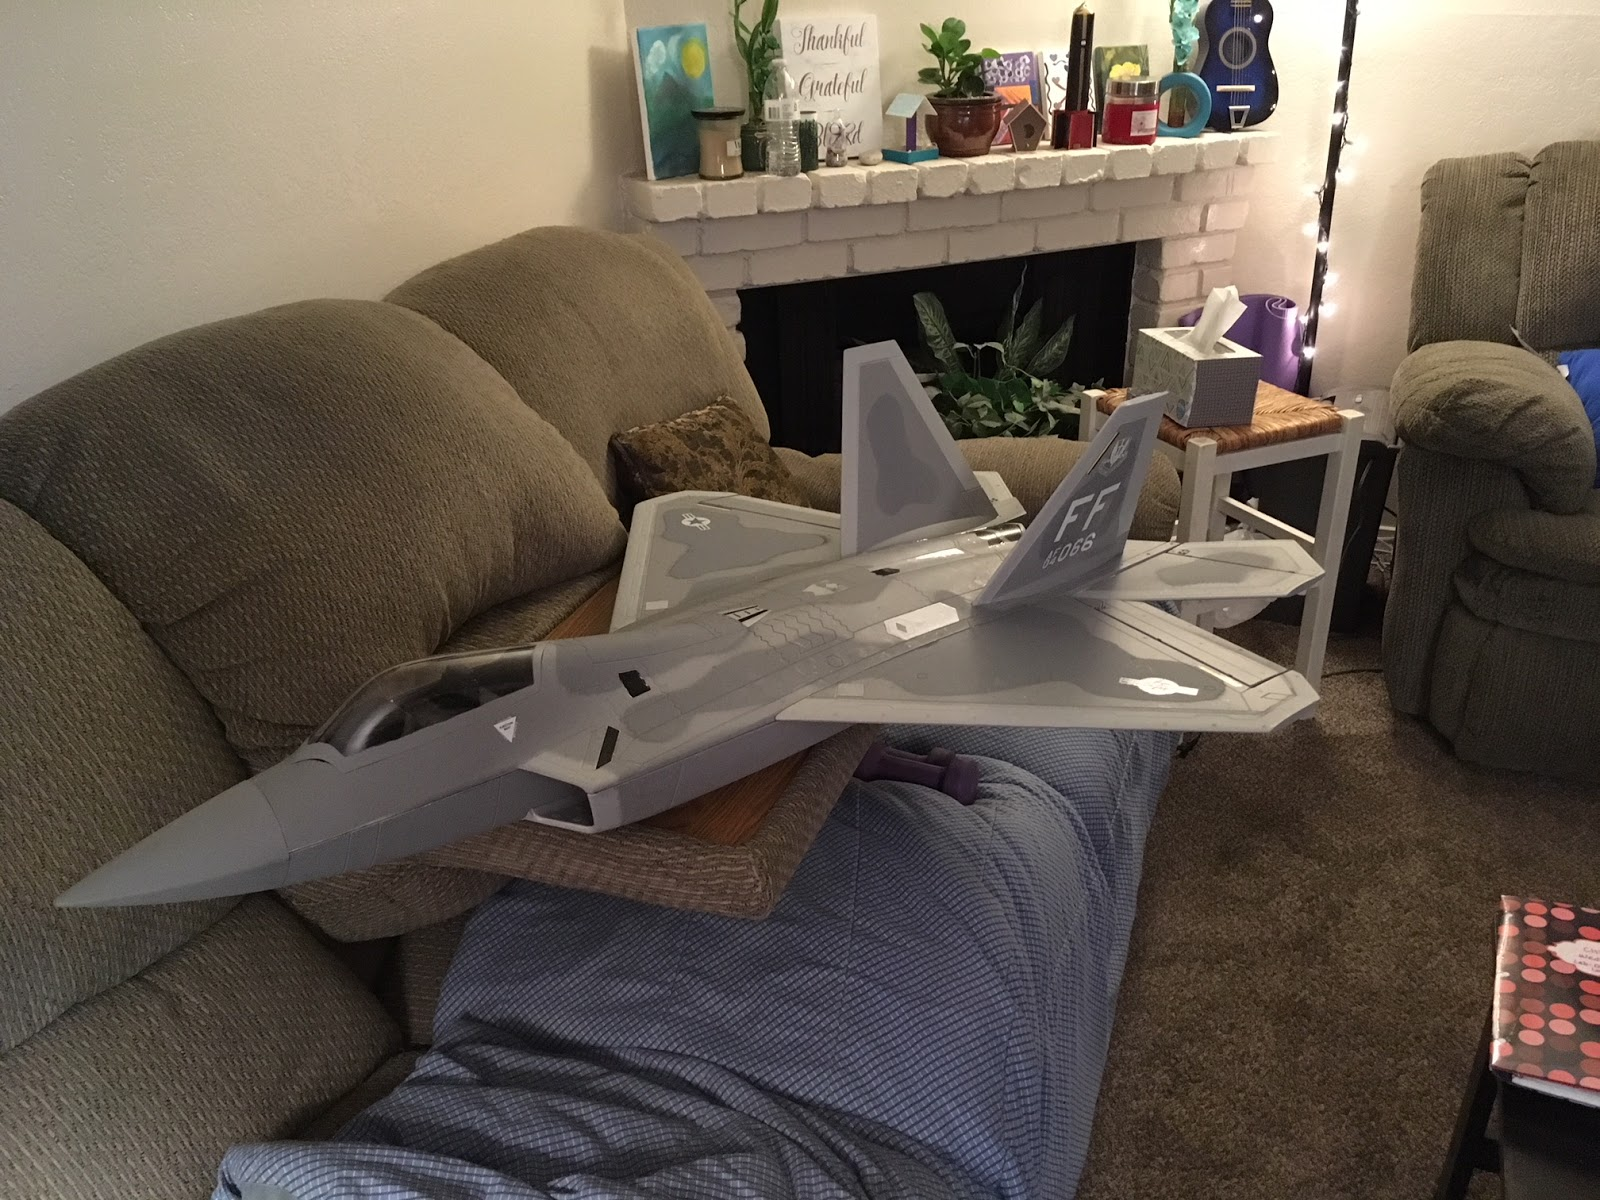 Rc Hobby News Reviews F 22 Raptor Engine Diagram The Lockheed Martin Is A Fifth Generation Single Seat Twin All Weather Stealth Tactical Fighter Aircraft Developed For United